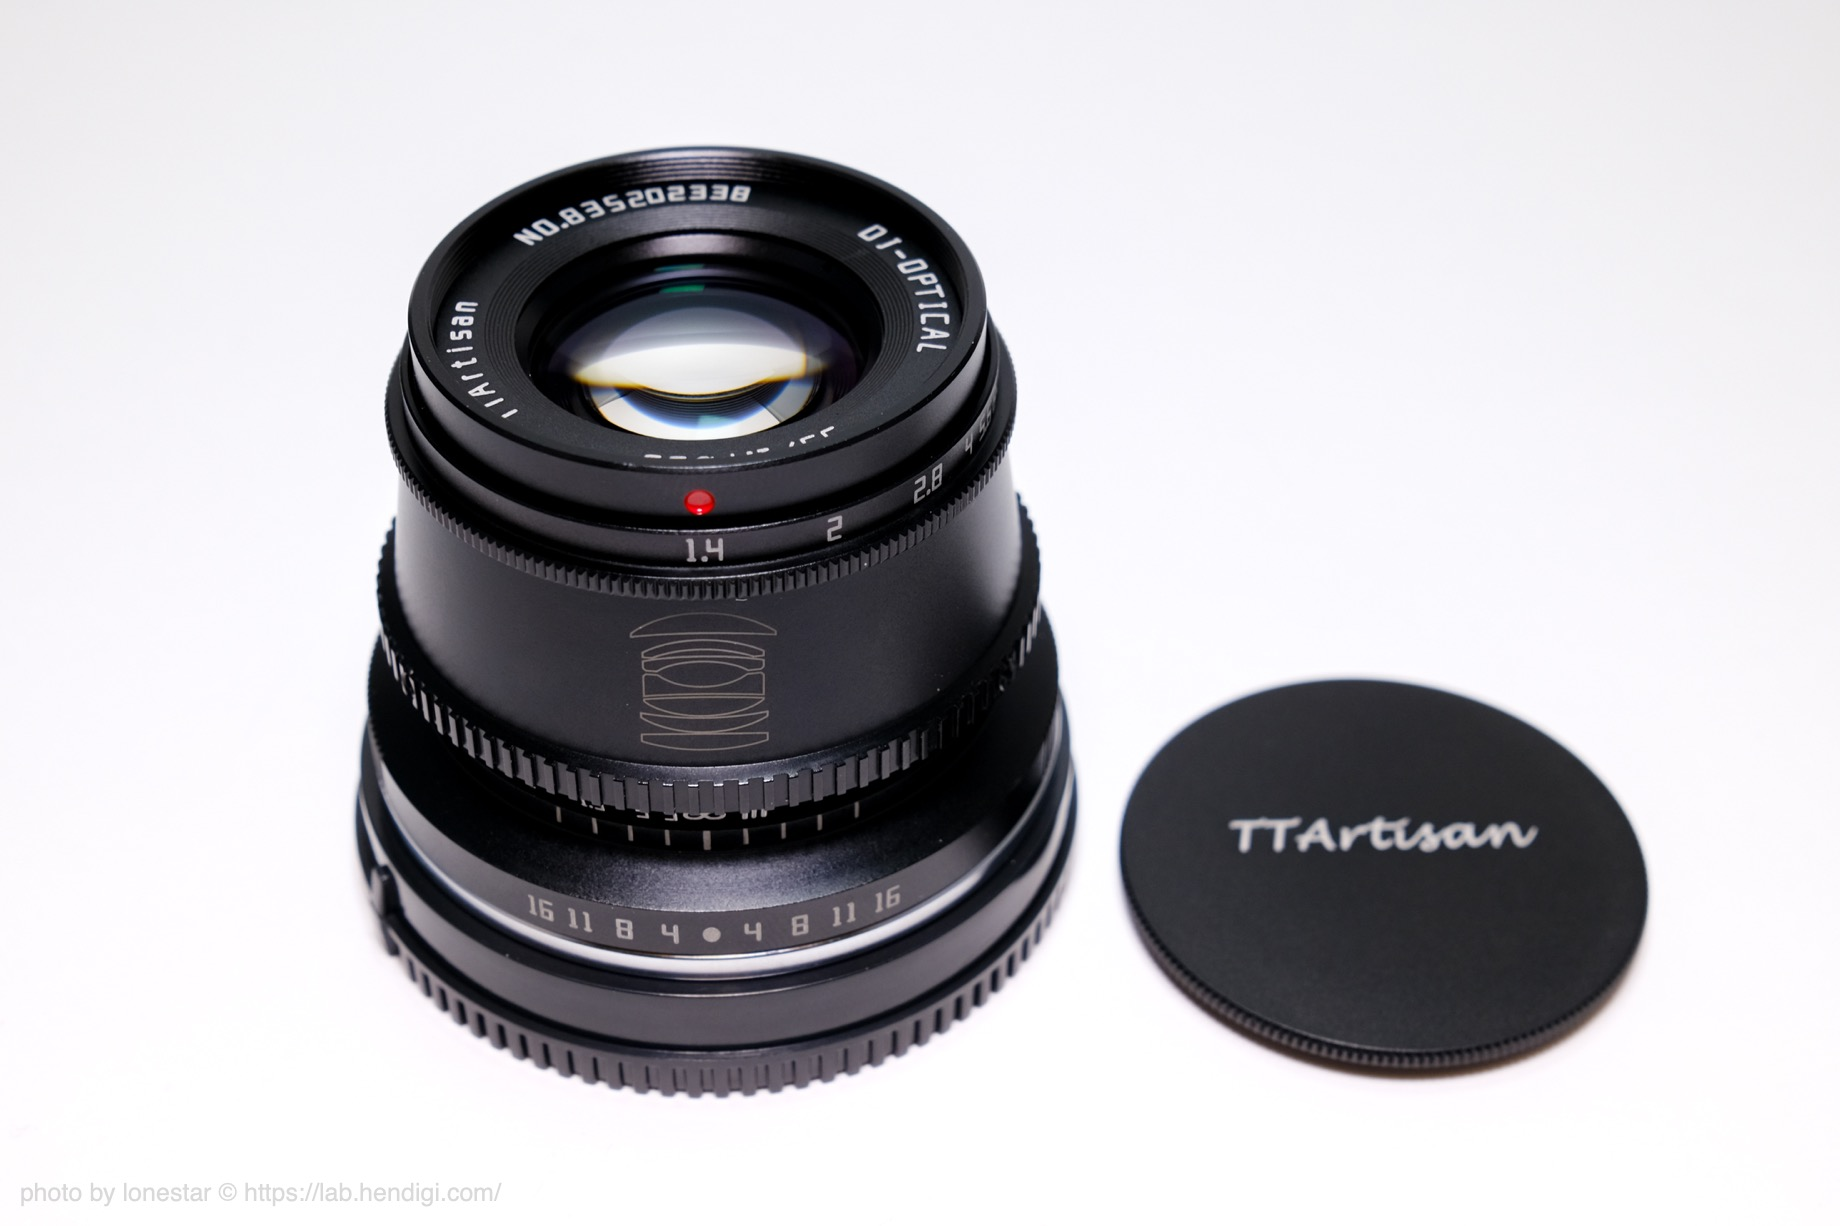 TTArtisan 35mm f/1.4 C レビュー